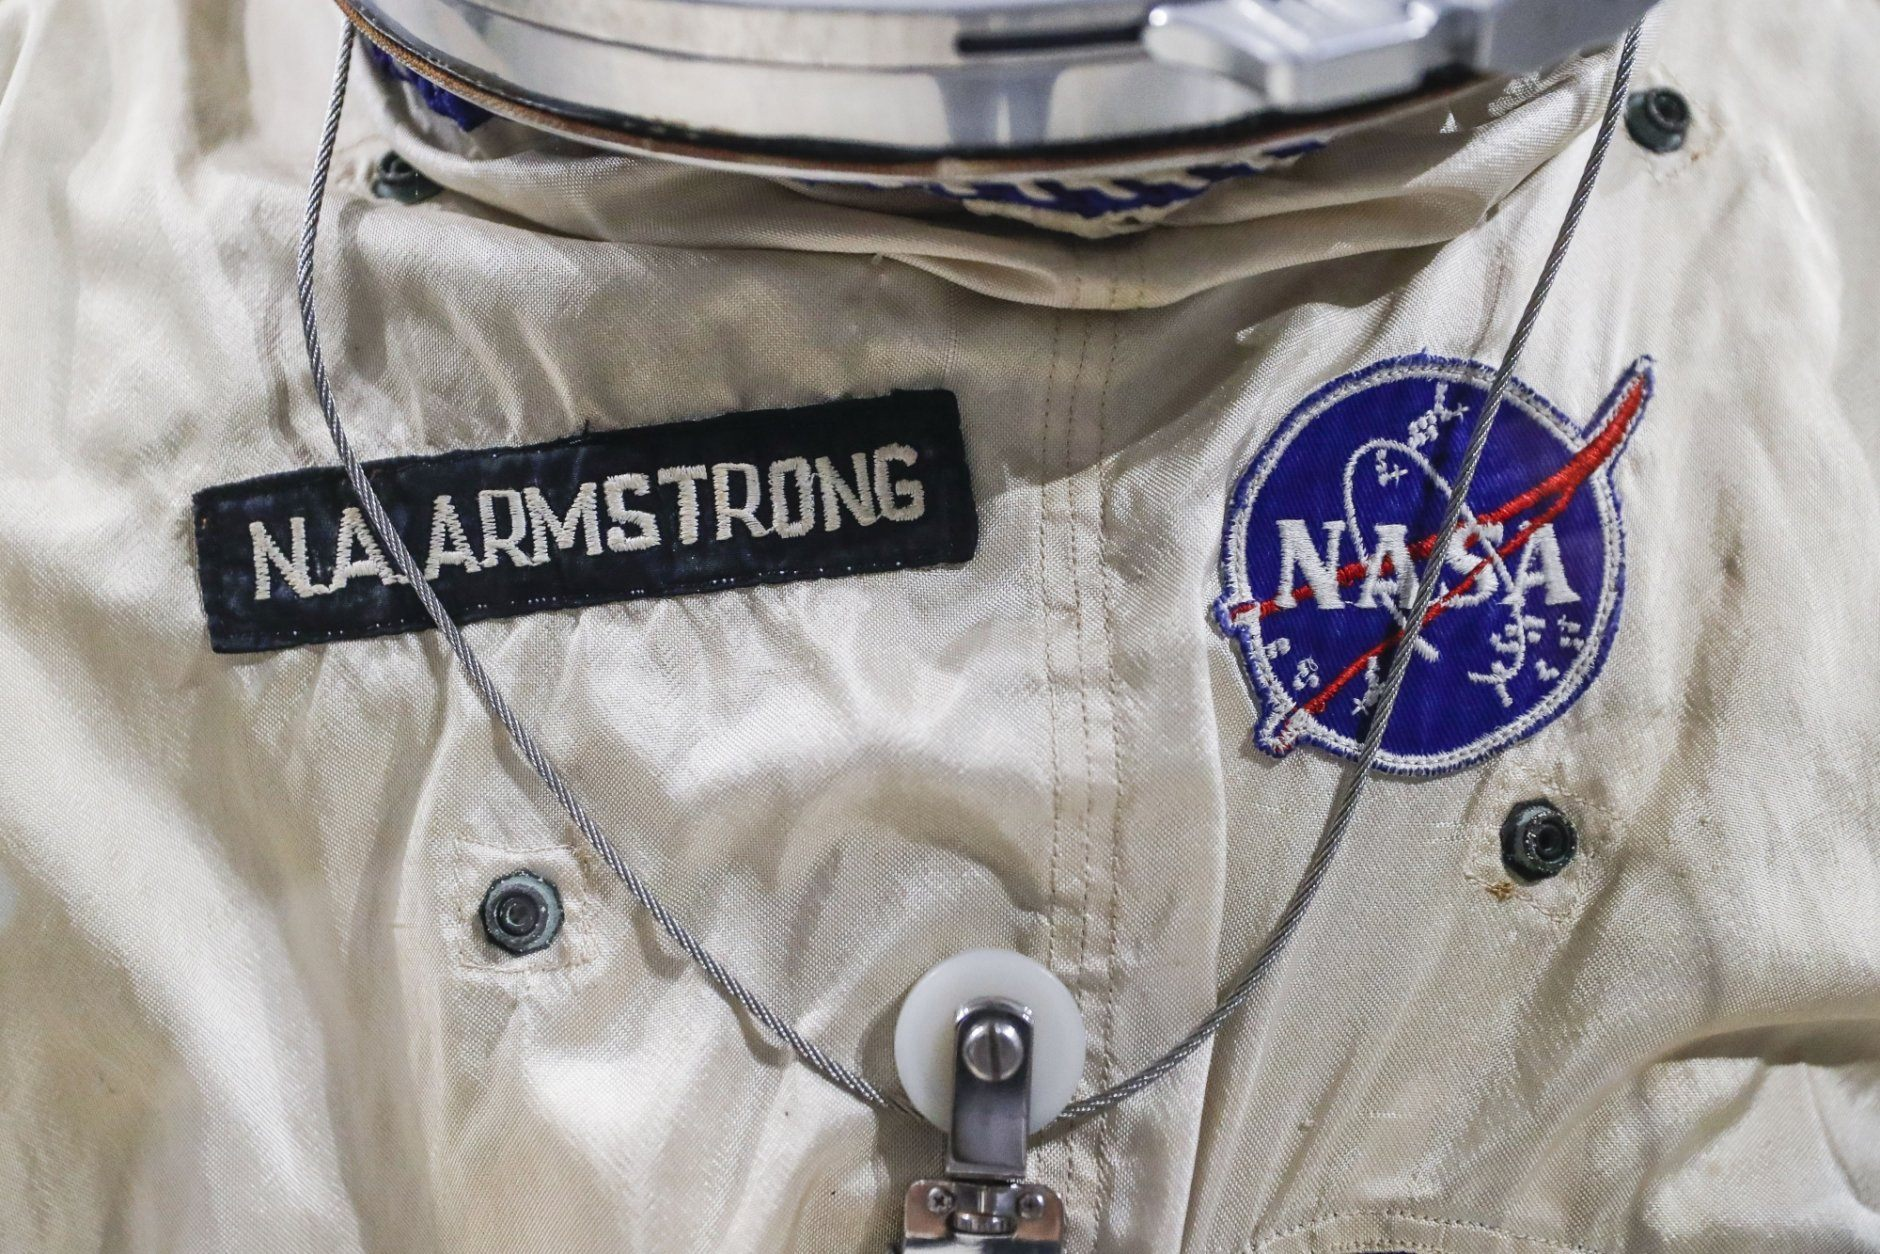 Patches adorn the spacesuit worm by astronaut Neil Armstrong for the Gemini VIII mission at the Armstrong Air & Space Museum, Wednesday, June 26, 2019, in Wapakoneta, Ohio.  Neil Armstrong helped put Wapakoneta  on the map July 20, 1969, when he became the first human to walk on the moon. The late astronaut remains larger than life in the city 60 miles (96.56 kilometers) north of Dayton, where visitors are greeted by the space base-shaped top of the space museum named for him as they exit Interstate 75. (AP Photo/John Minchillo)